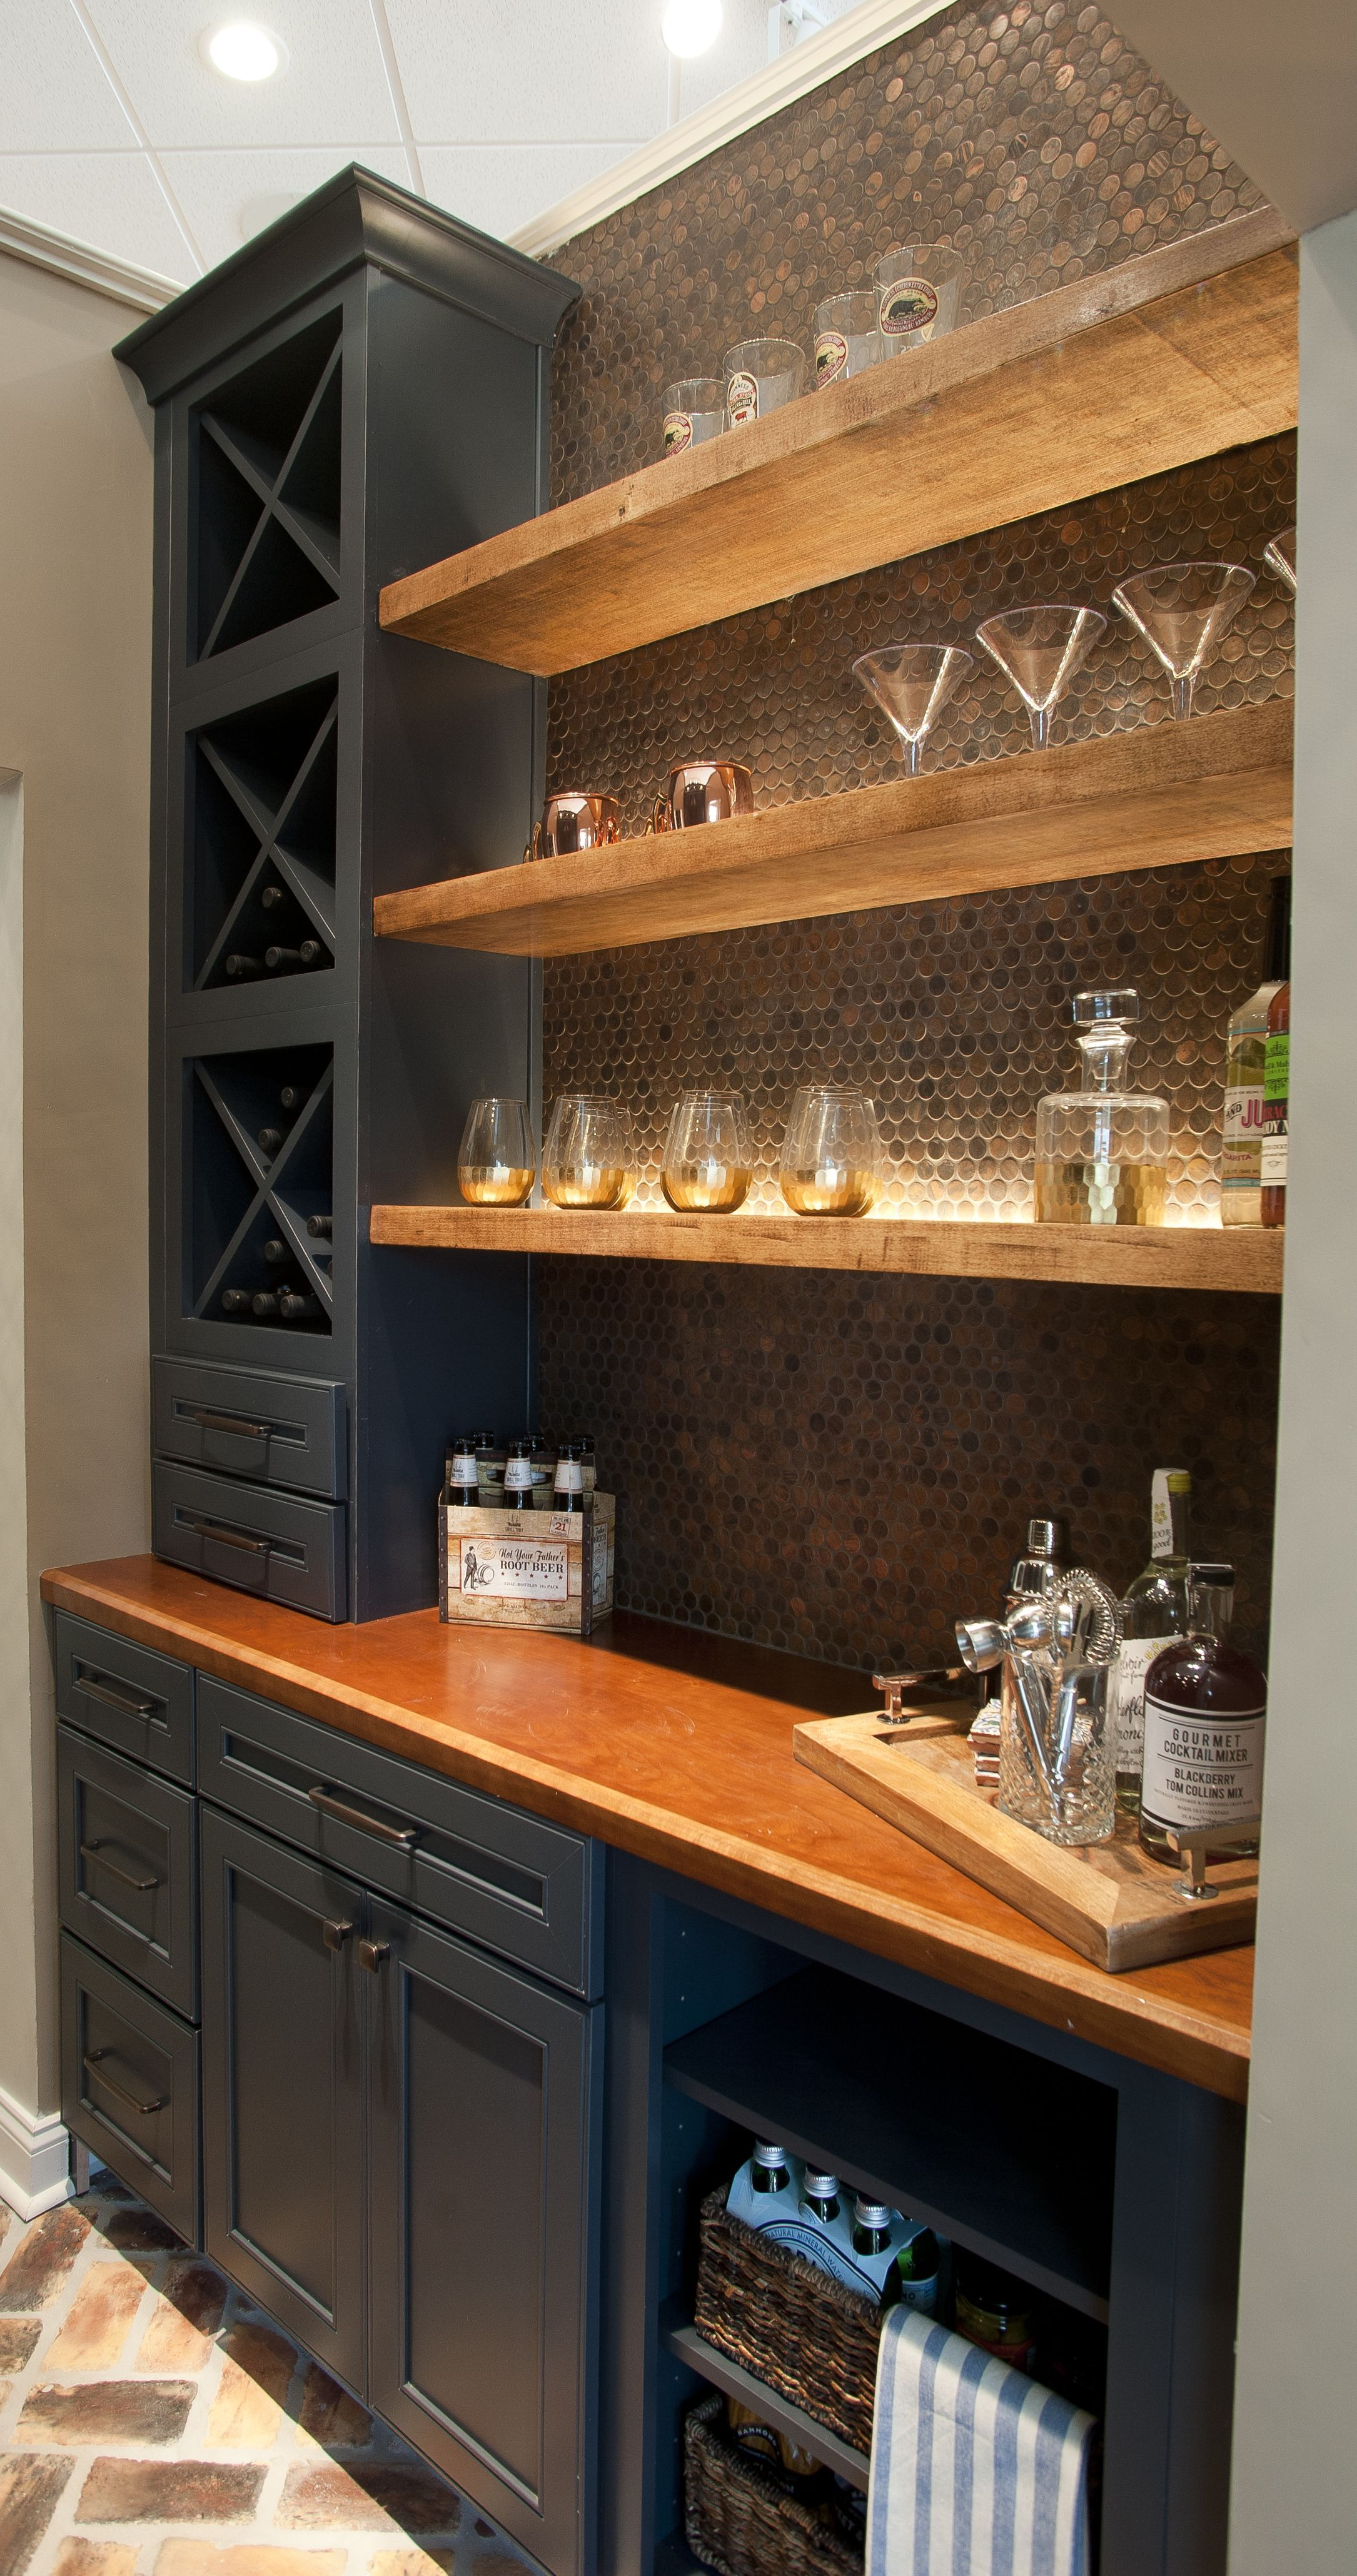 Pin By Taki Maki On Kitchens Bars For Home Home Bar Designs